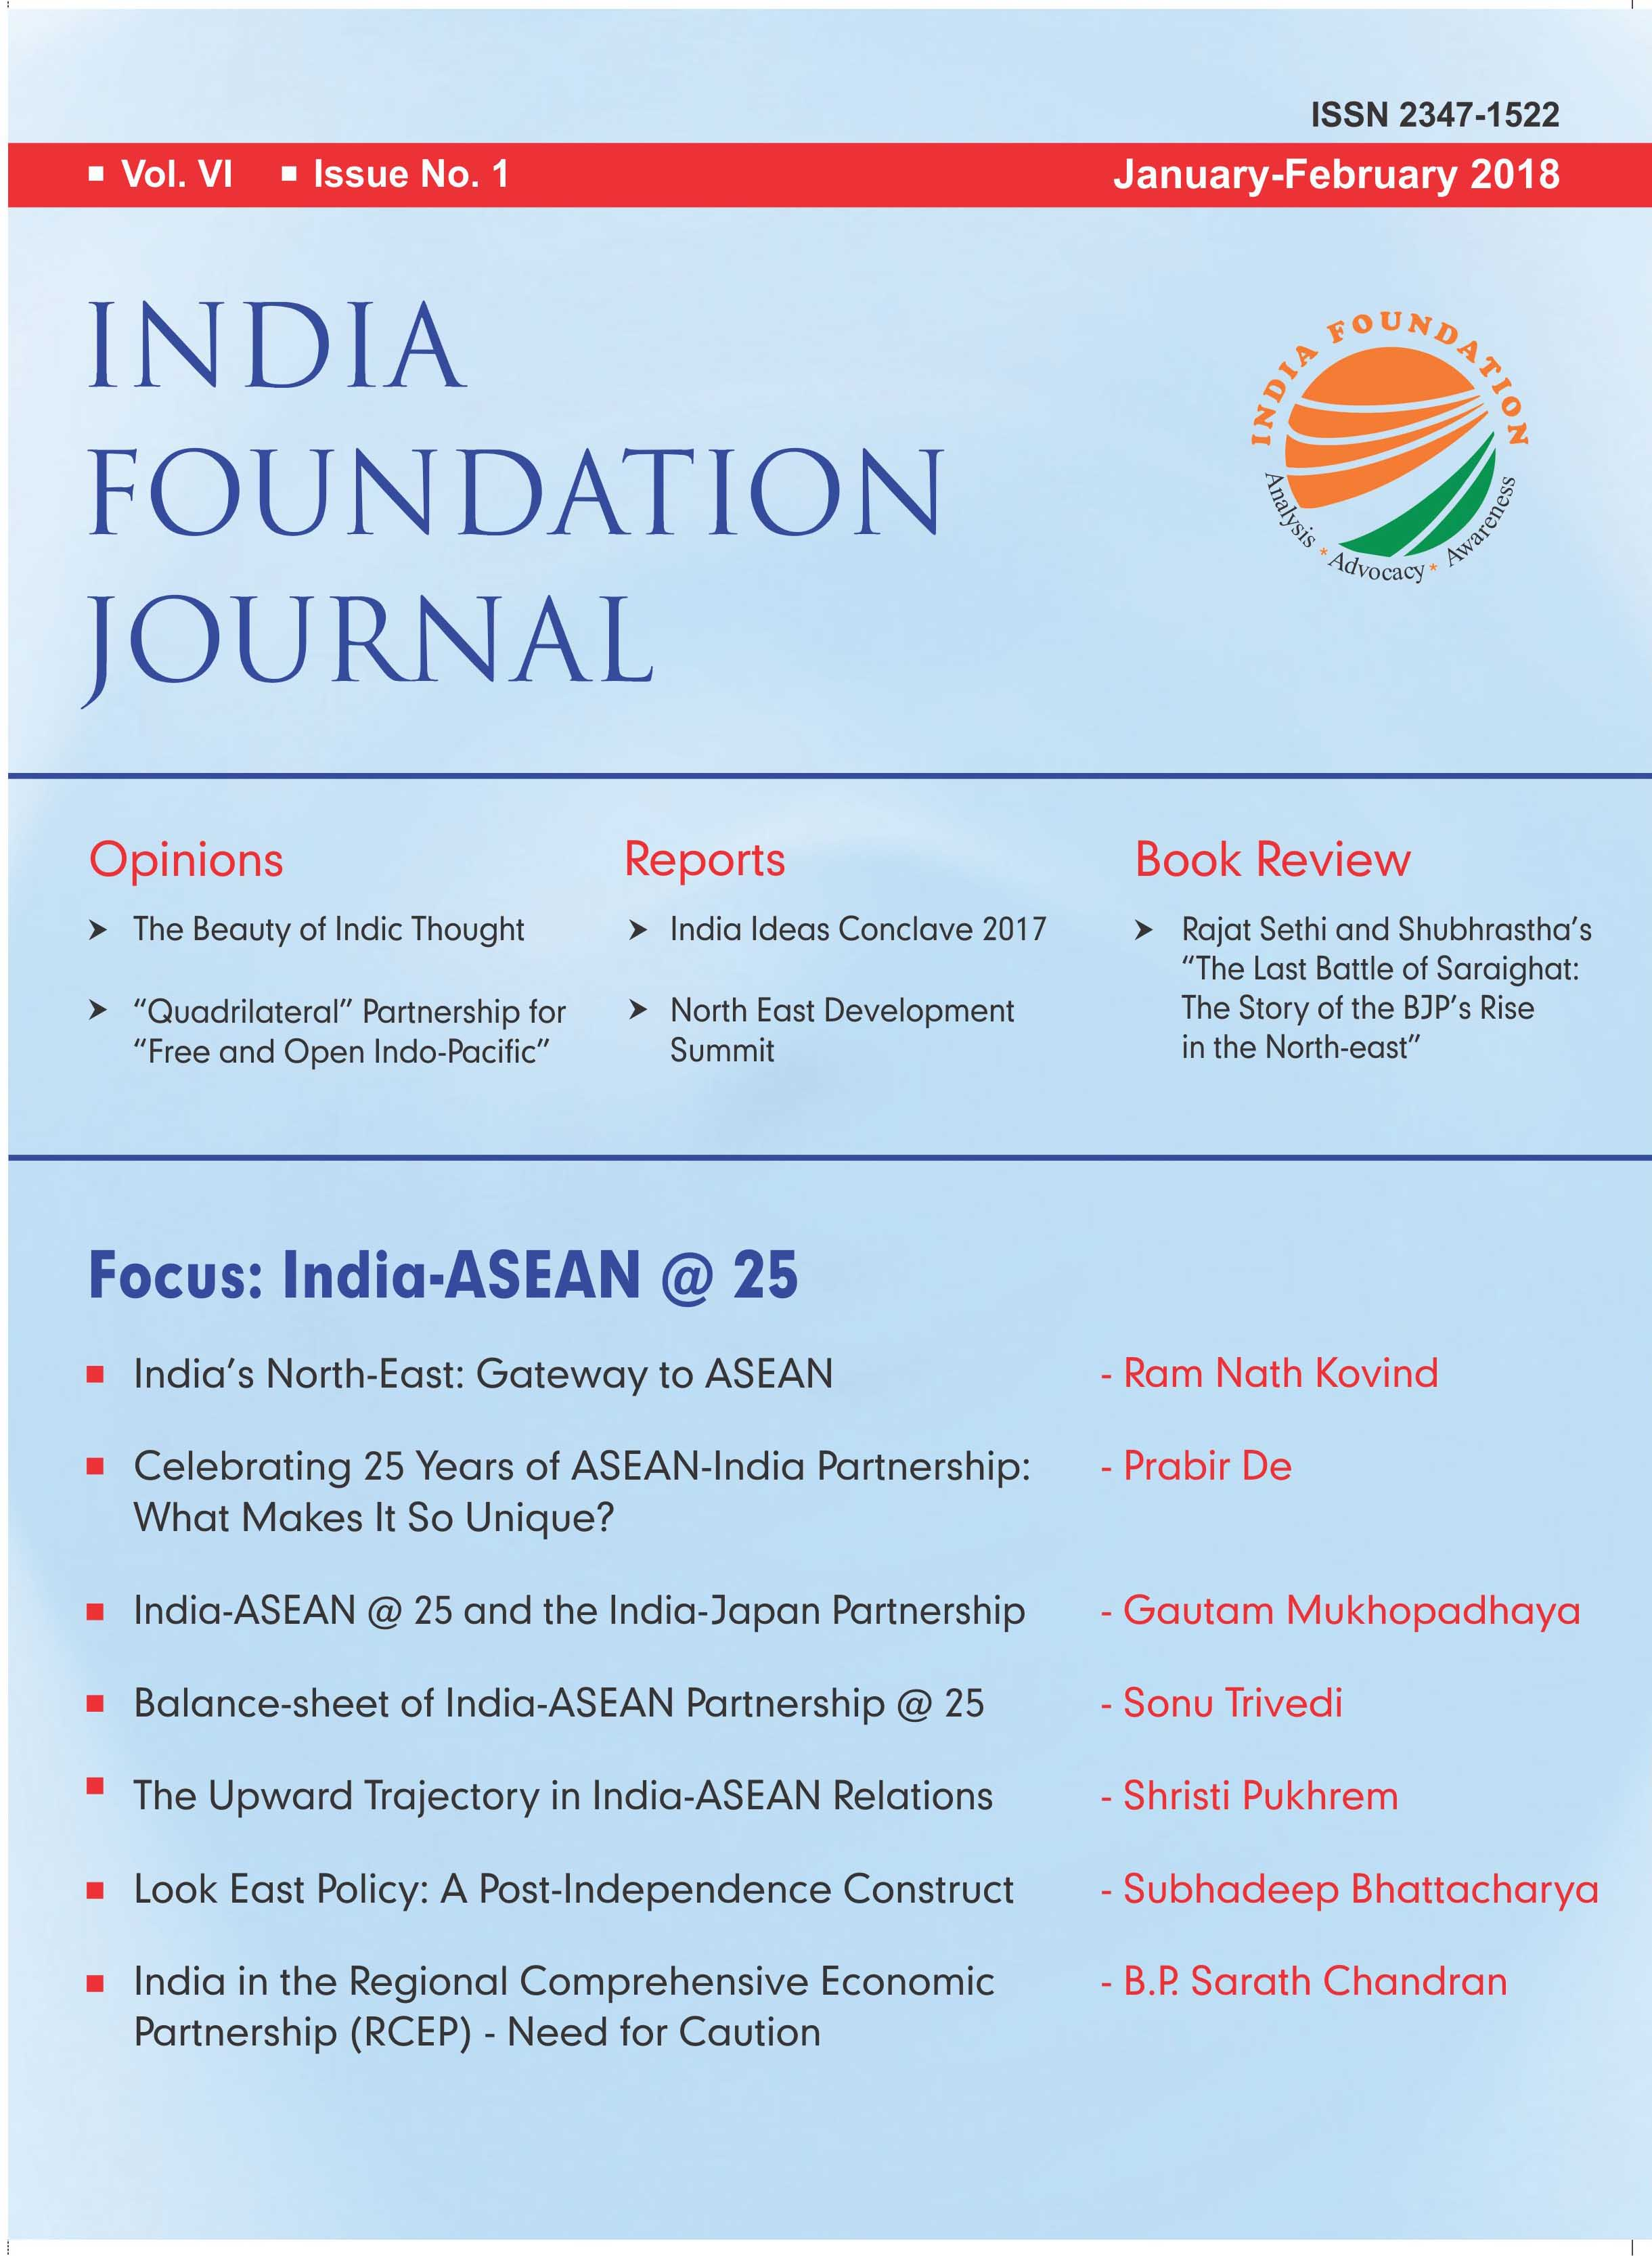 India Foundation Journal January February 2018